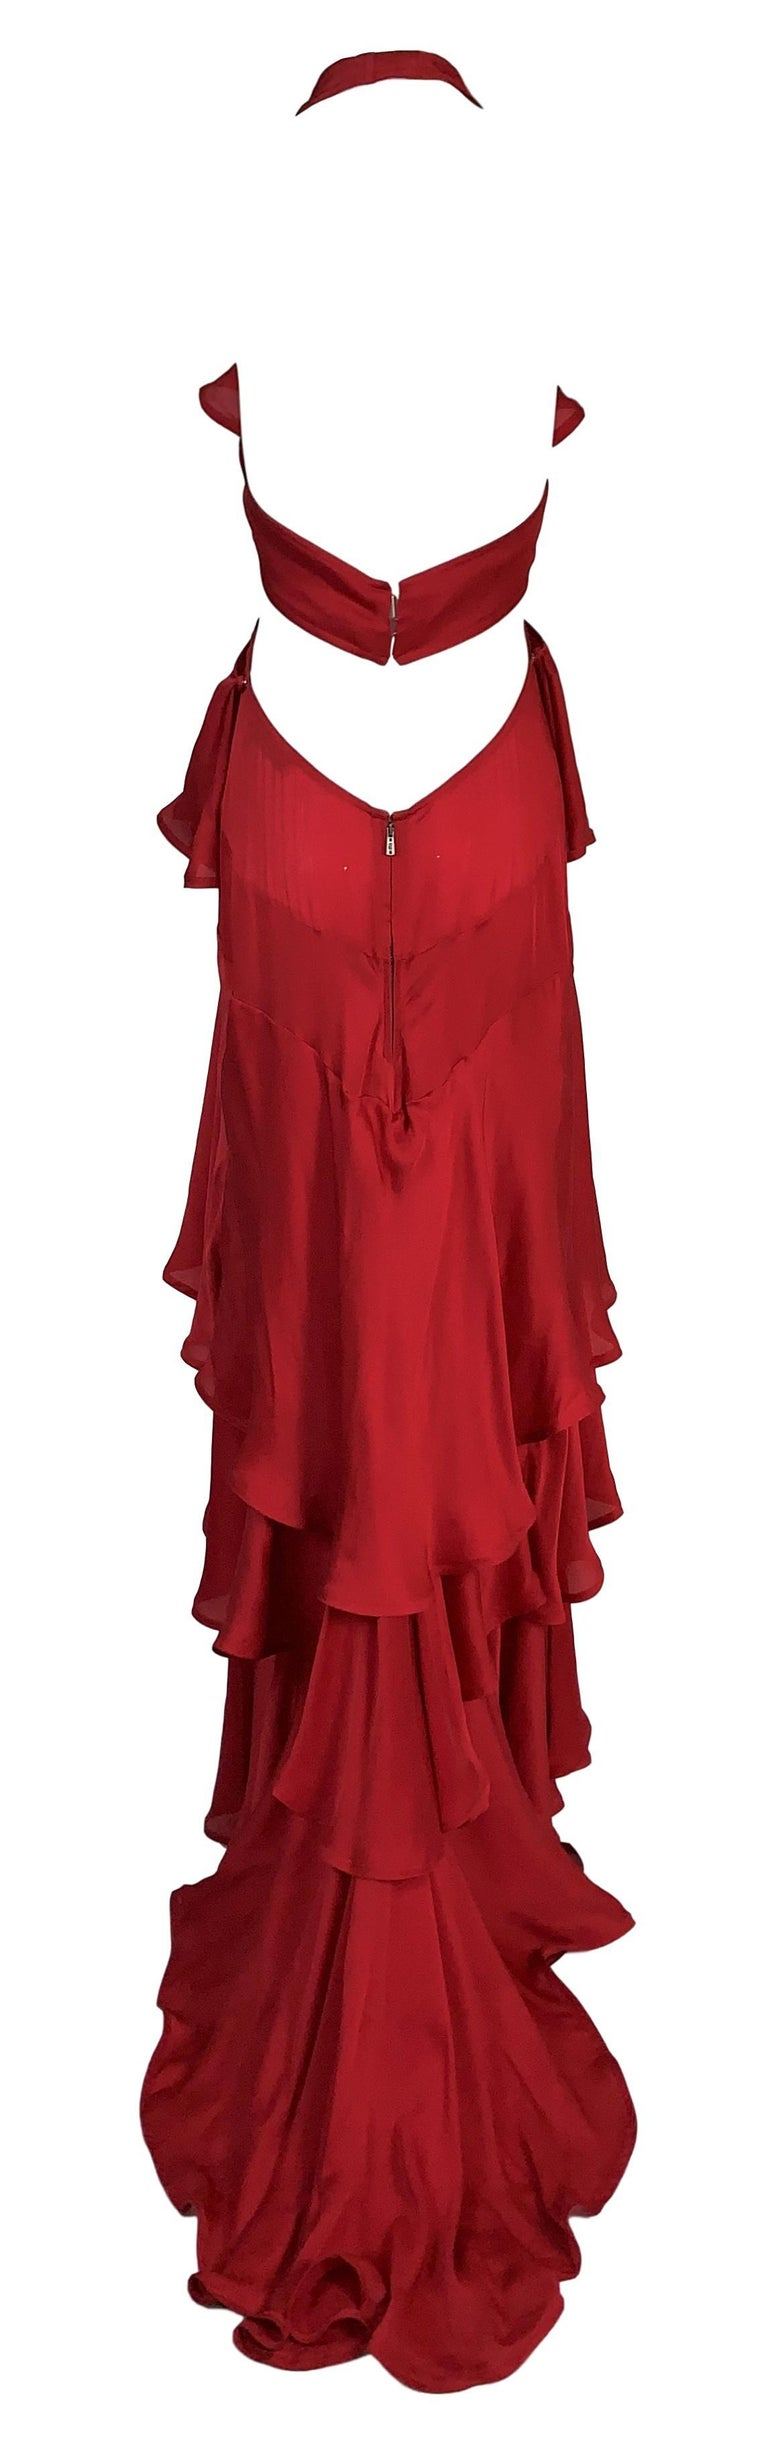 F/W 2003 Yves Saint Laurent Tom Ford Runway Red Cut-Out Ruffles Gown Dress In Good Condition For Sale In Yukon, OK